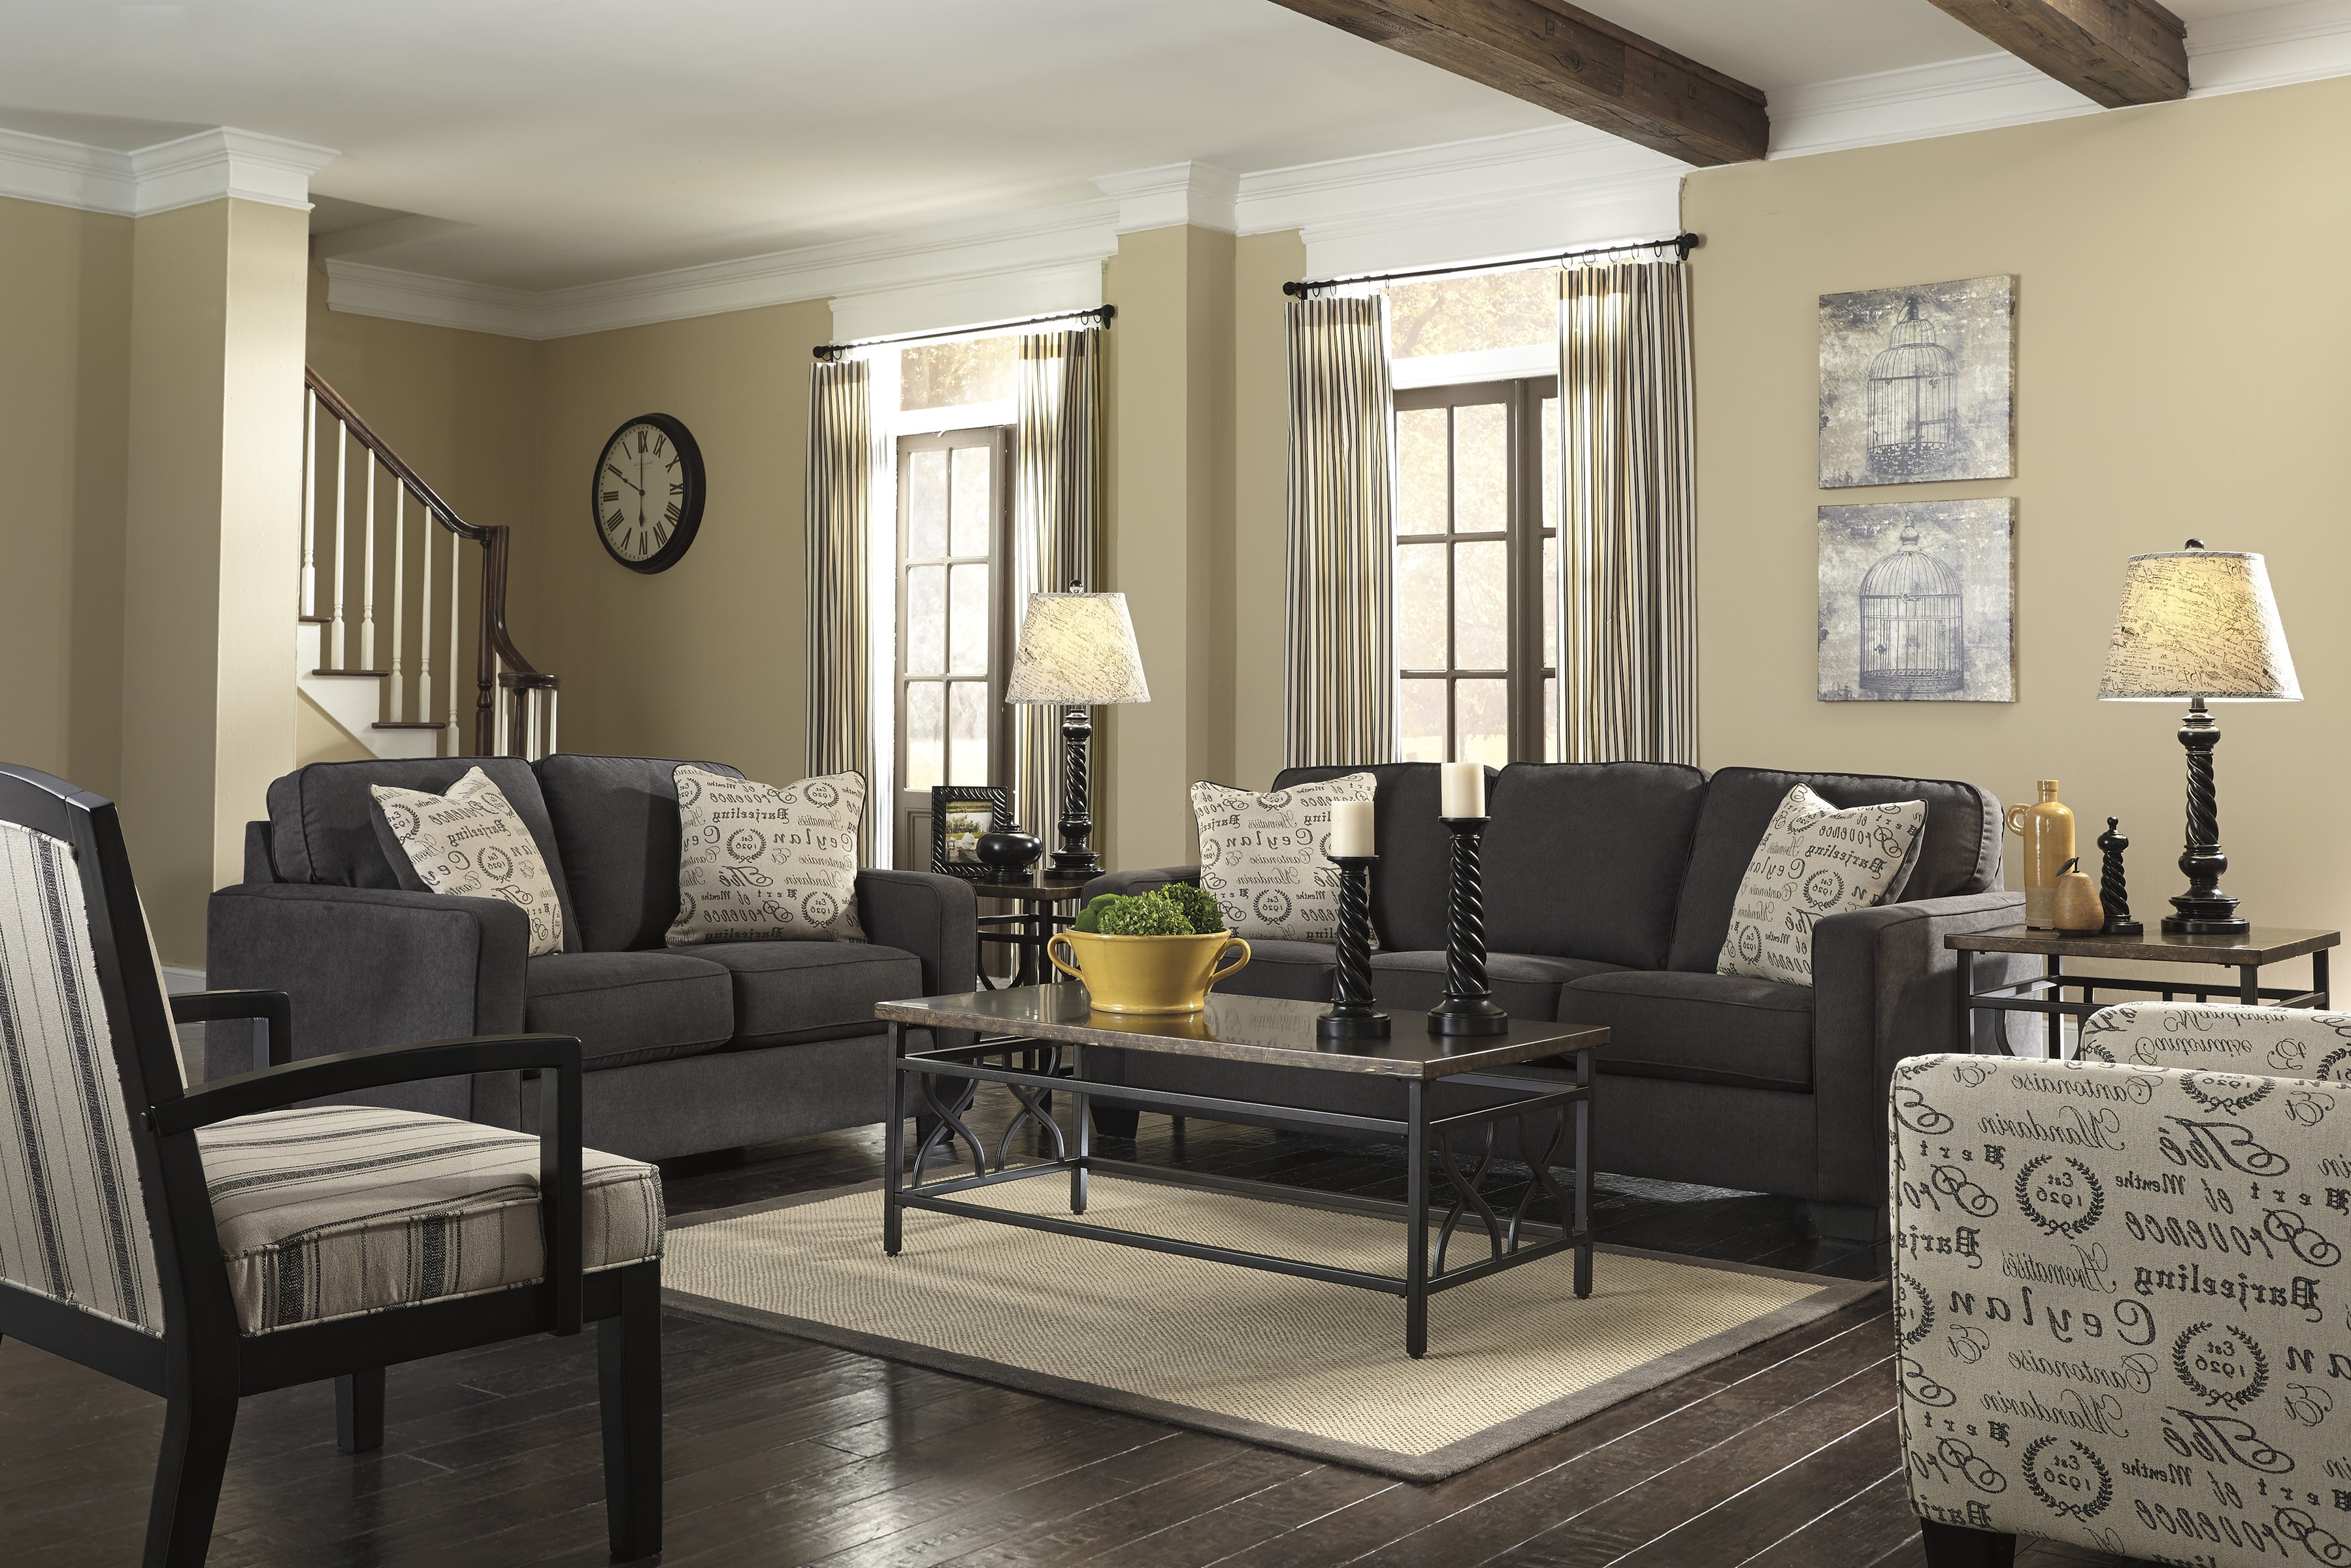 contemporary charcoal gray sectional sofa concept-Elegant Charcoal Gray Sectional sofa Picture